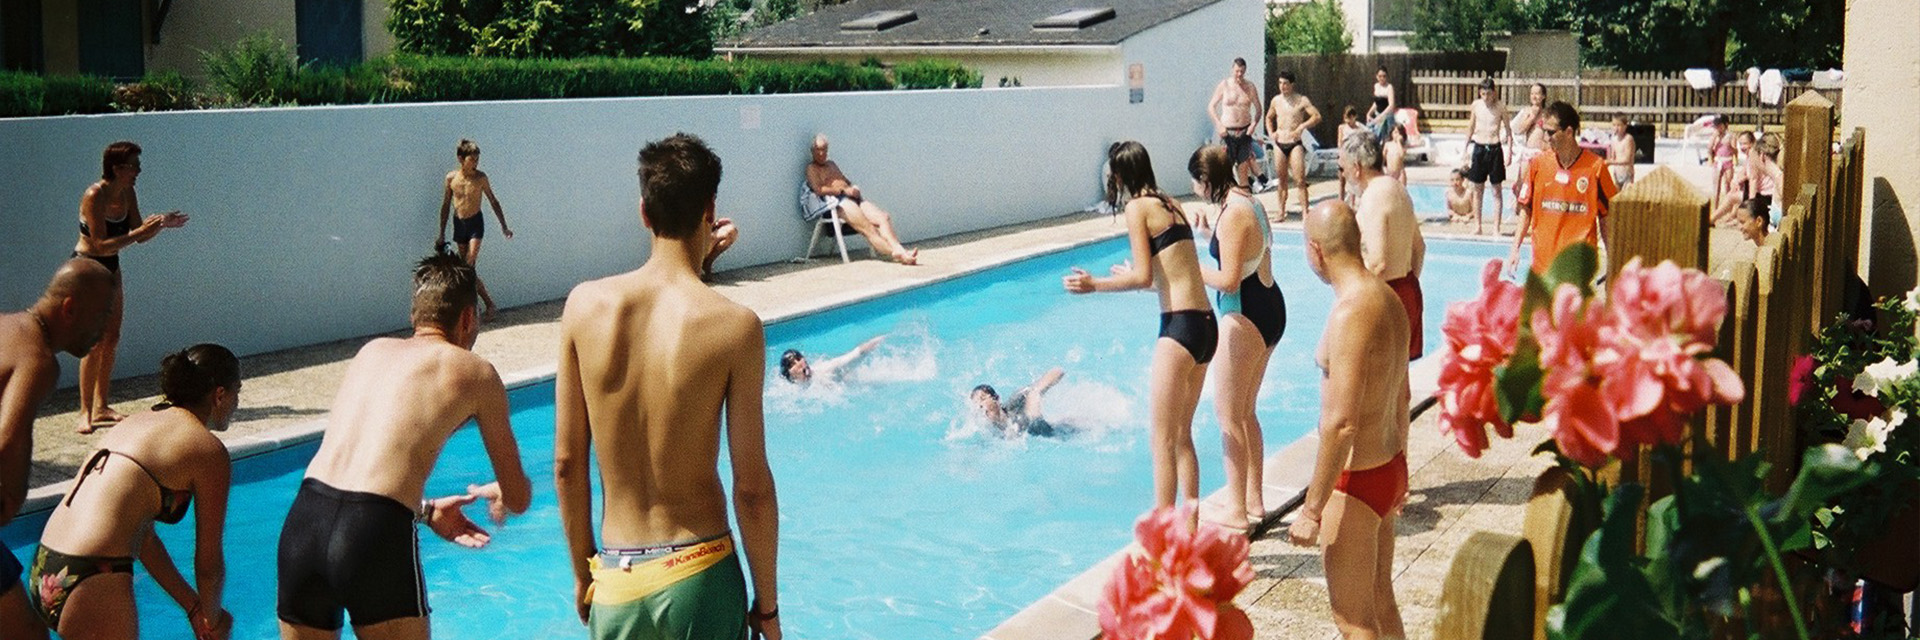 Village_club_vacances_pyrenees_clairevie_piscine